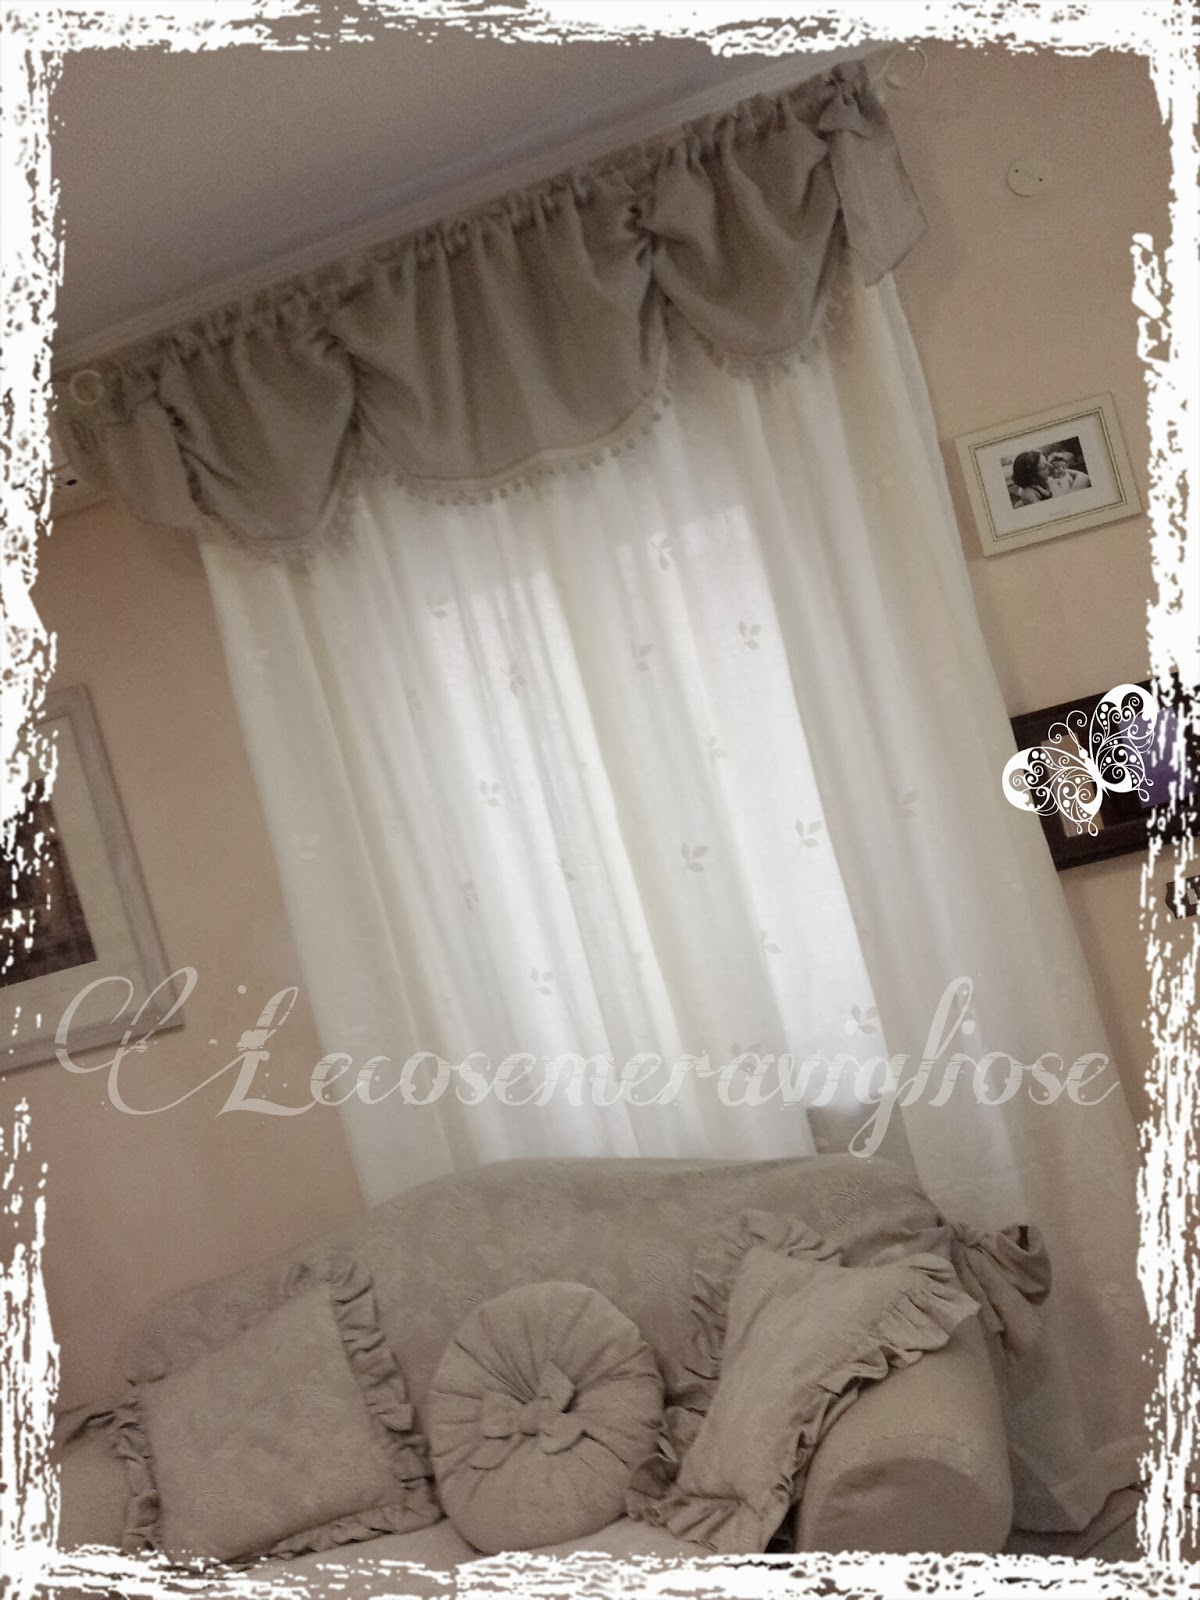 Lecosemeravigliose shabby e country chic passions tende for Tende country chic